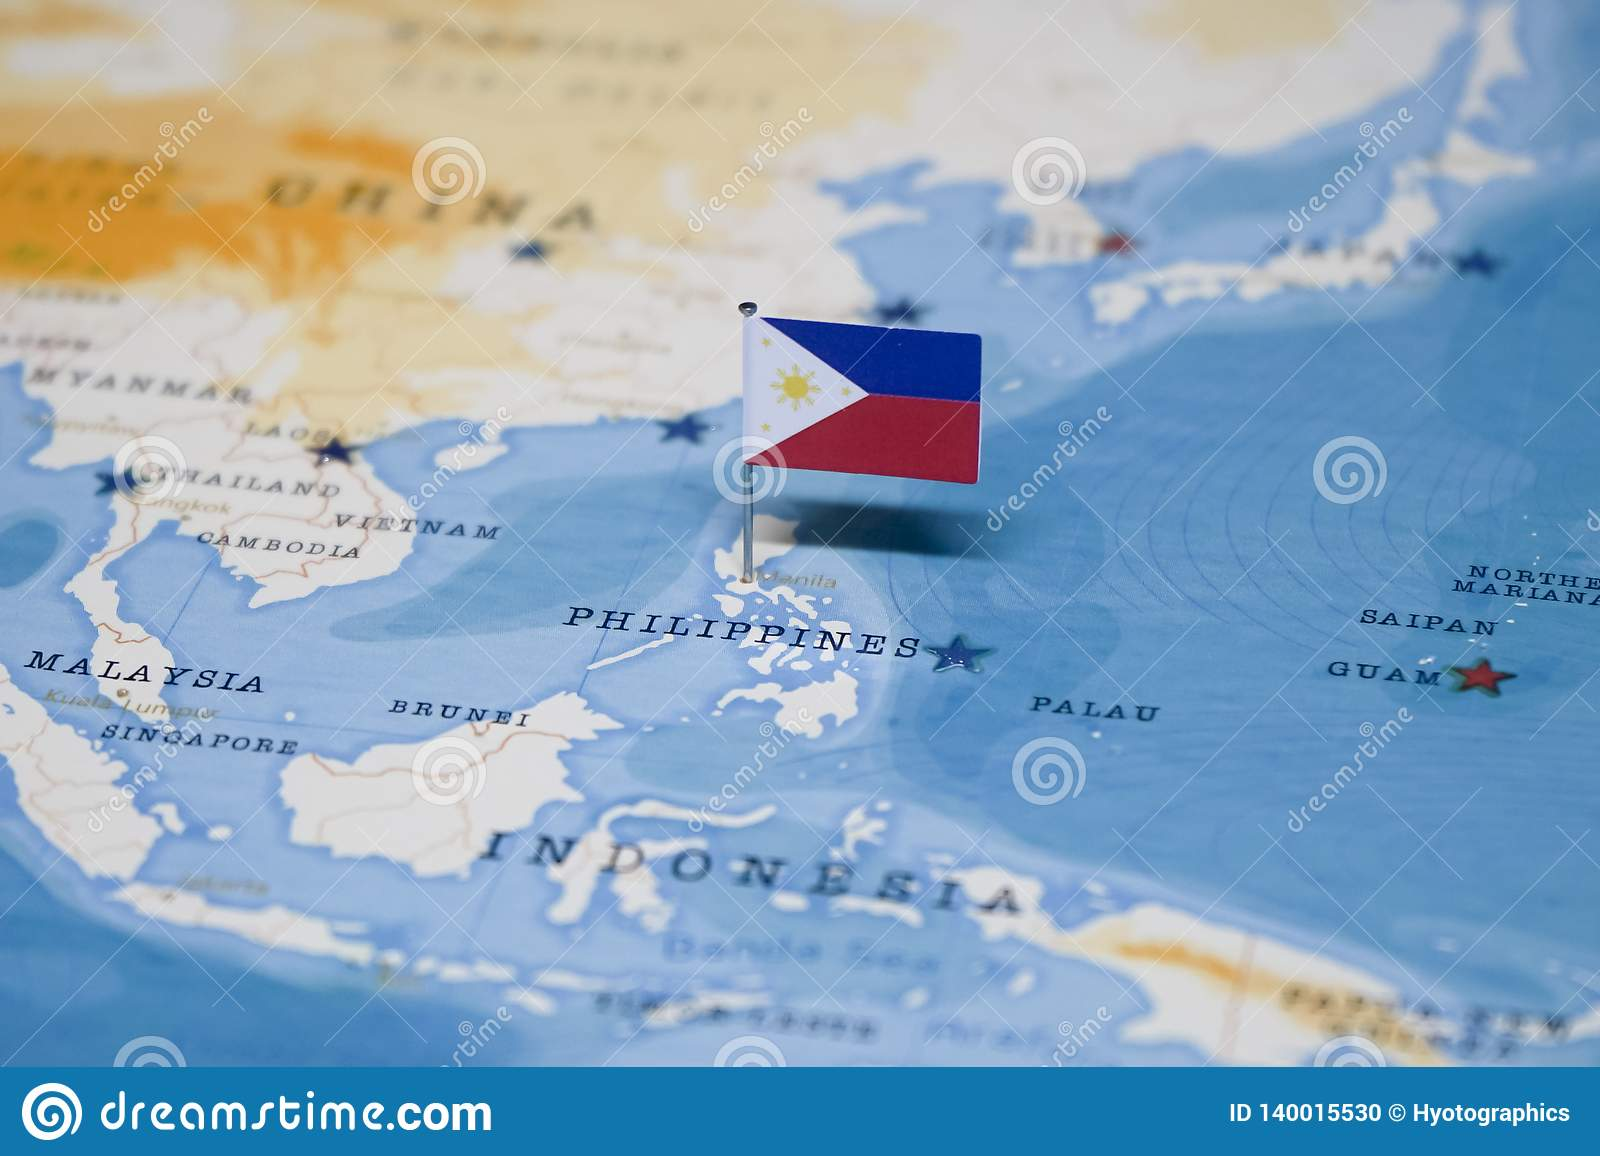 Picture of: The Flag Of Philippines In The World Map Stock Photo Image Of Land Location 140015530